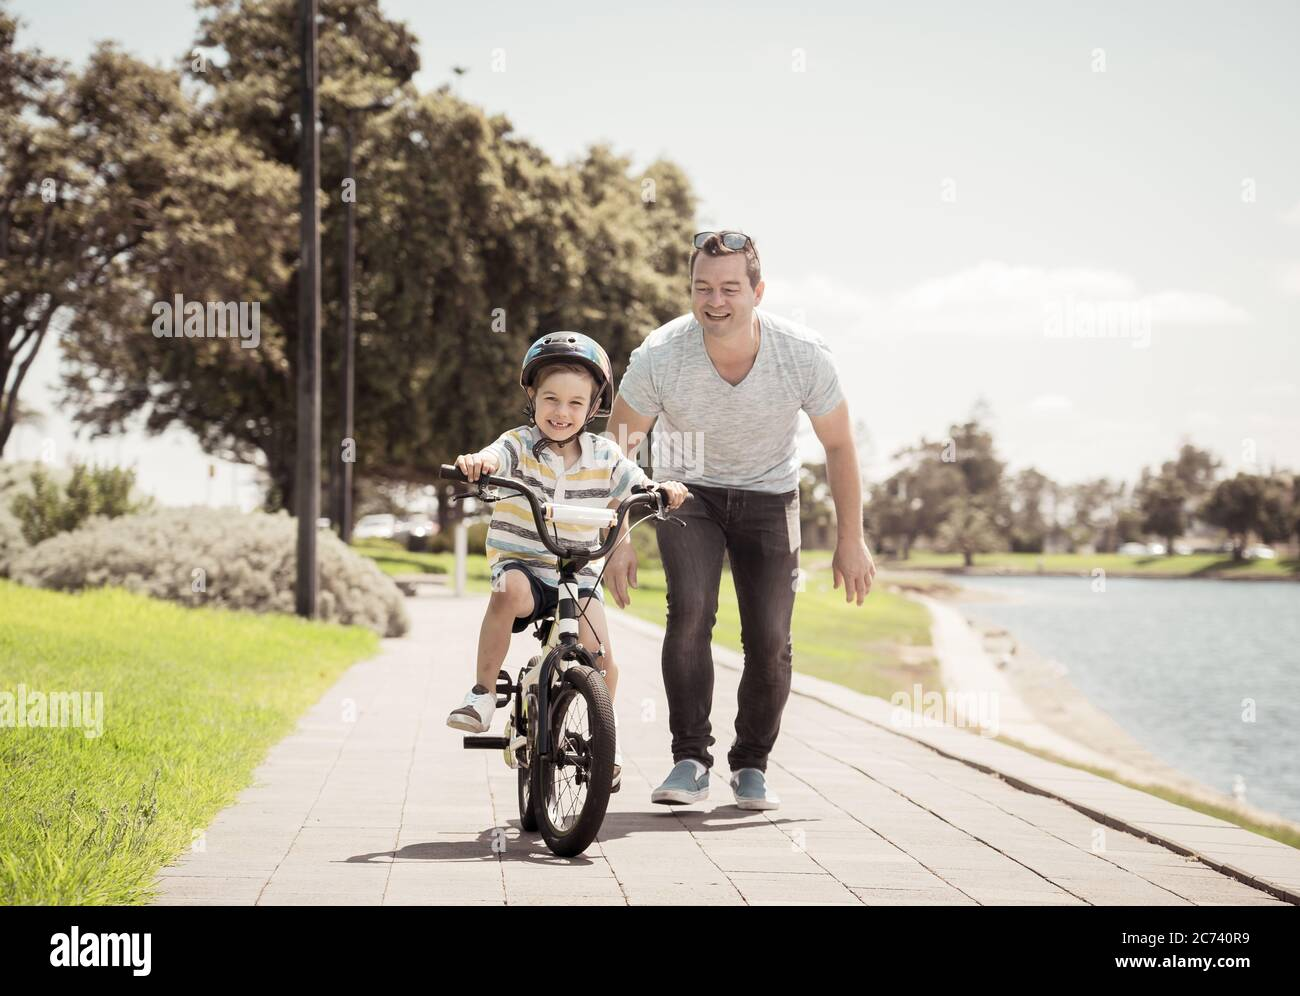 Boy learning to ride a bicycle with his father in the park by the lake. Father and son having fun together on the bikes. Happy family, outdoors activi Stock Photo